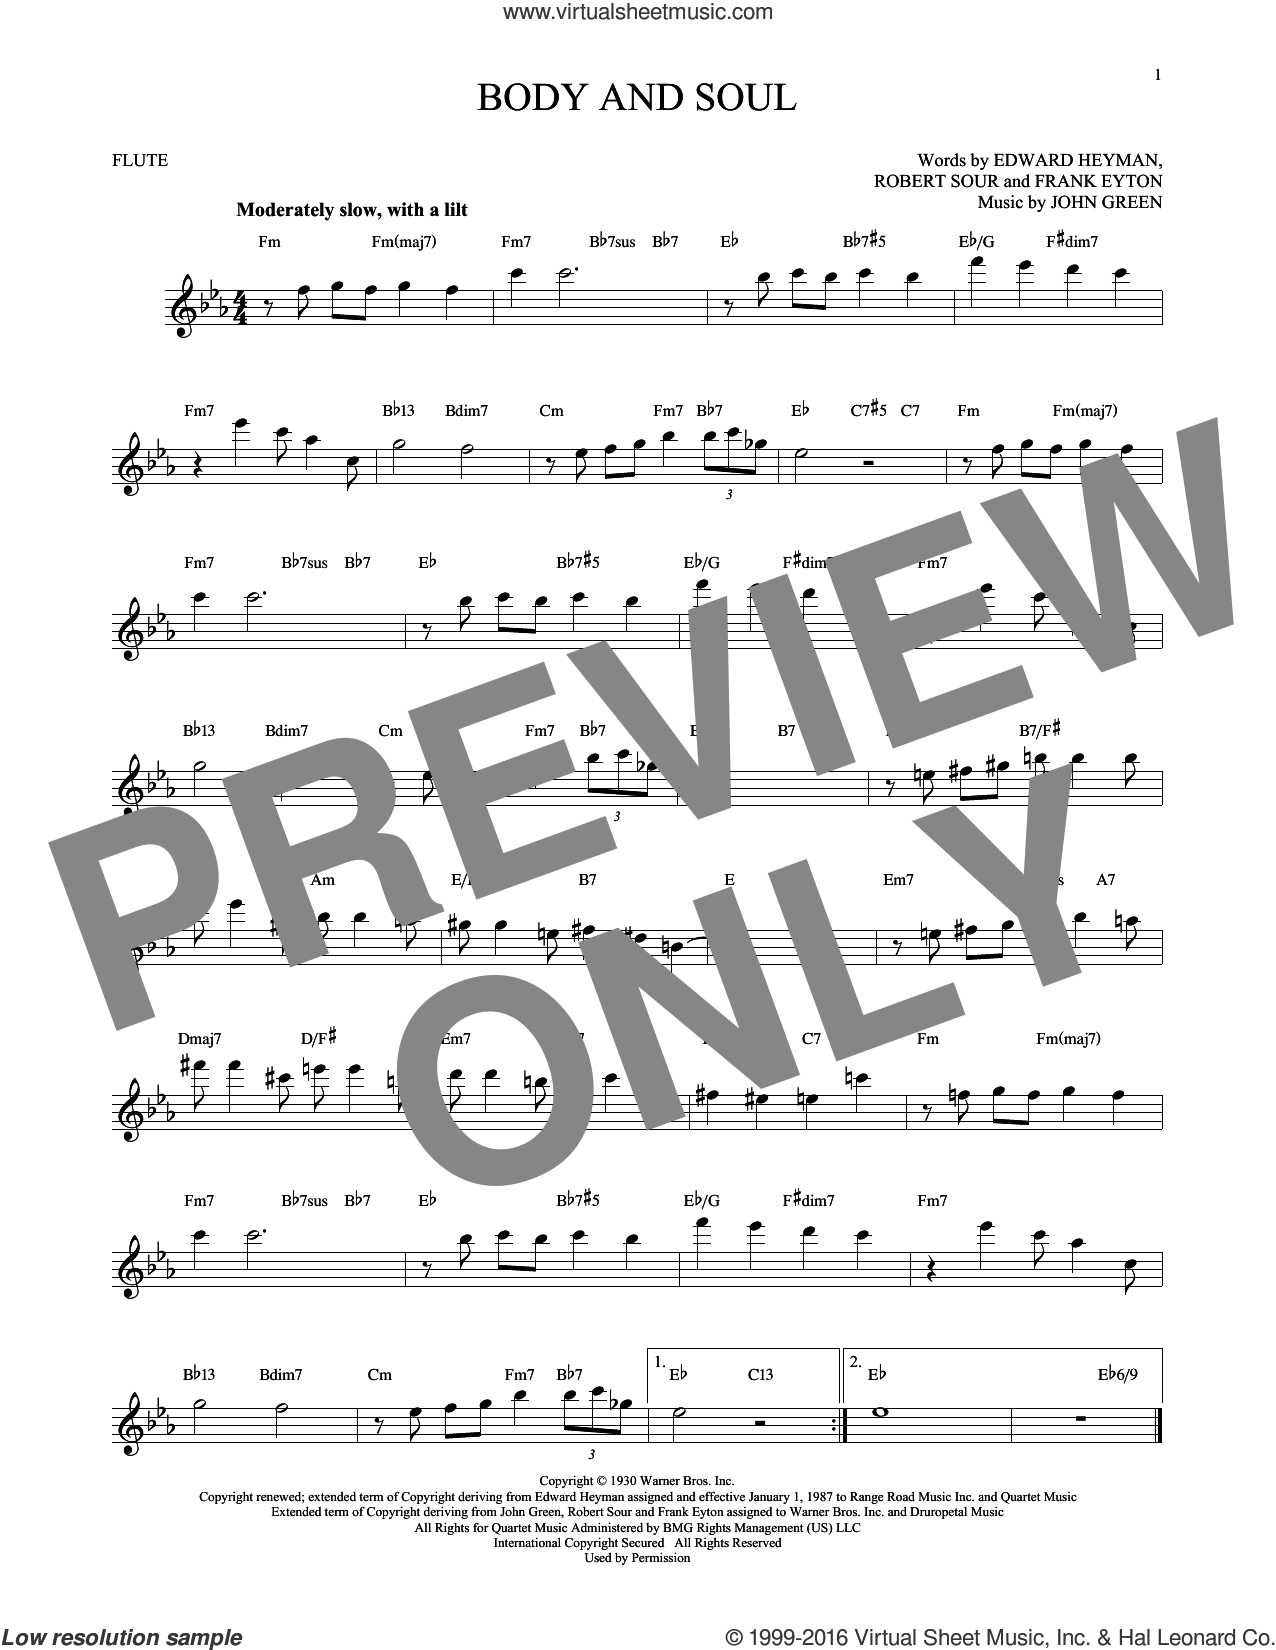 Body And Soul sheet music for flute solo by Edward Heyman, Tony Bennett & Amy Winehouse, Frank Eyton, Johnny Green and Robert Sour, intermediate skill level